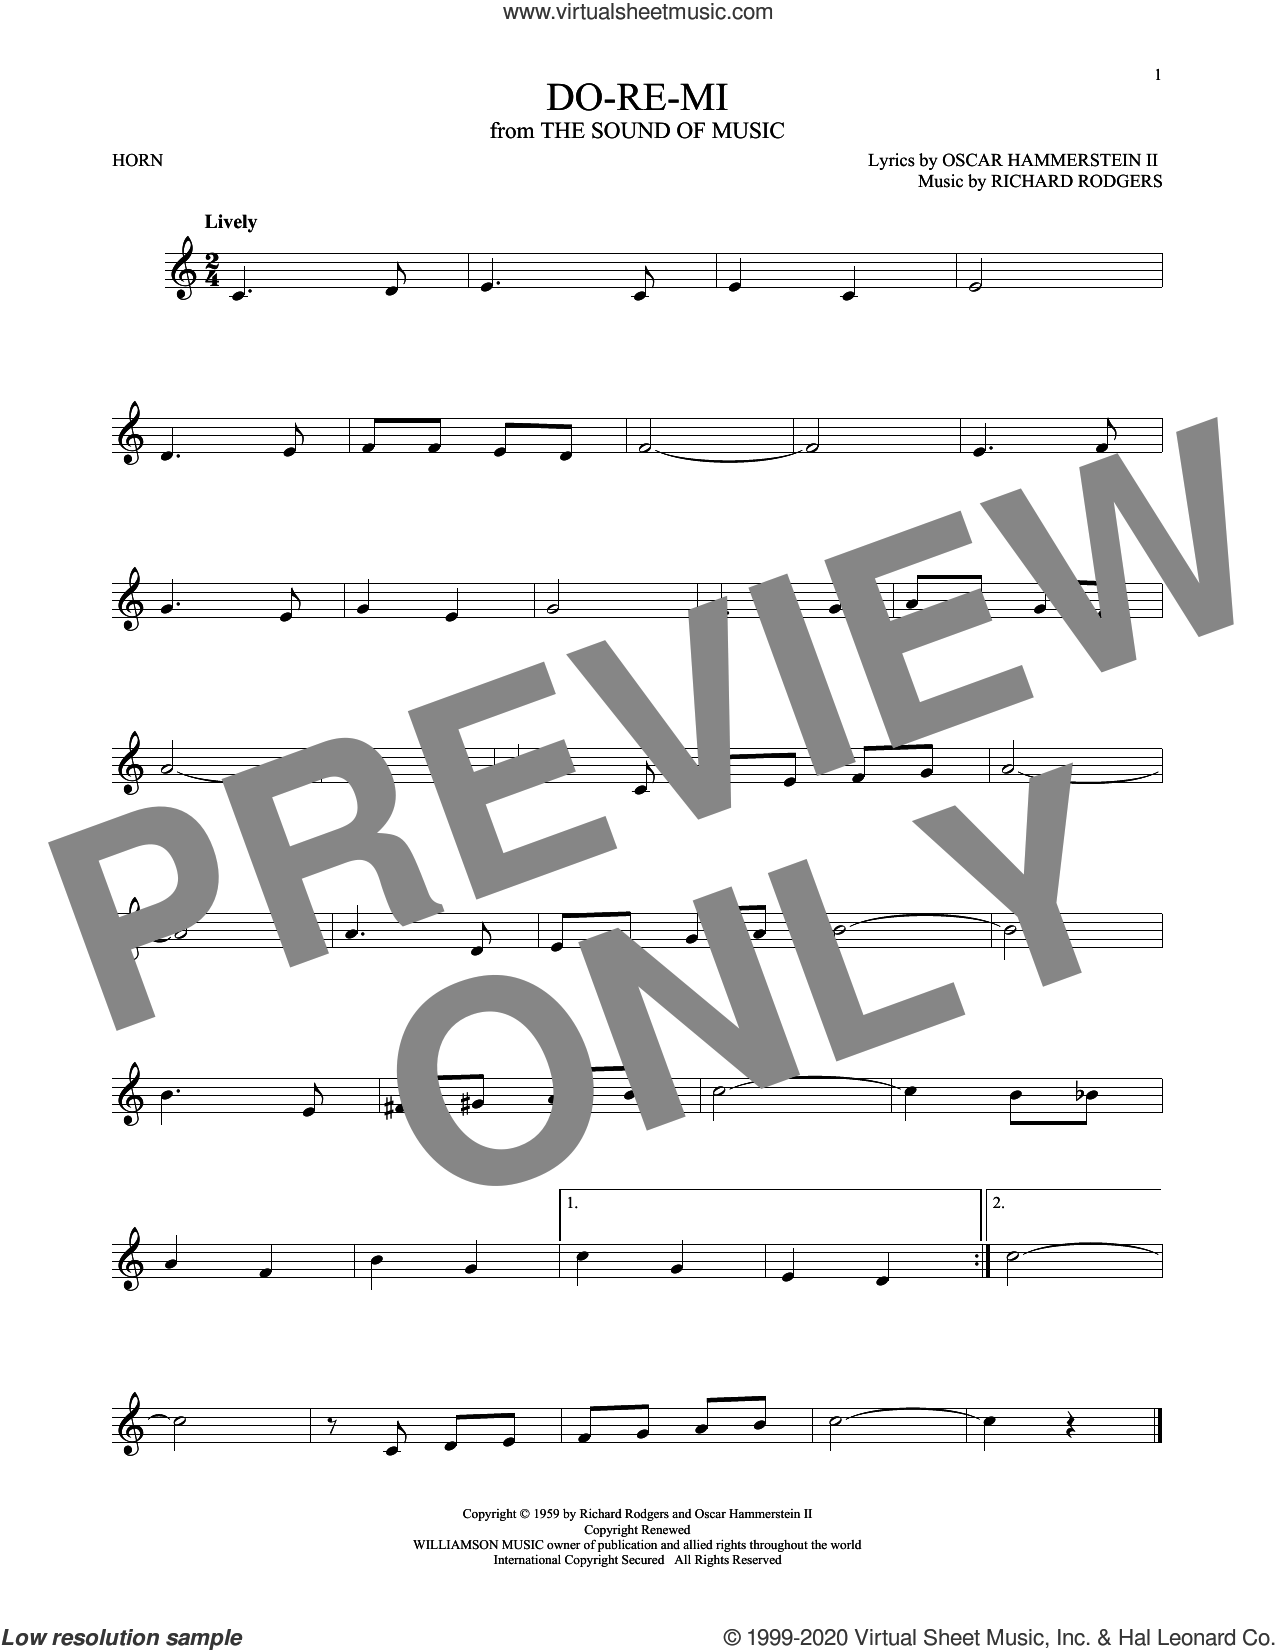 Do-Re-Mi (from The Sound of Music) sheet music for horn solo by Rodgers & Hammerstein, Oscar II Hammerstein and Richard Rodgers, intermediate skill level